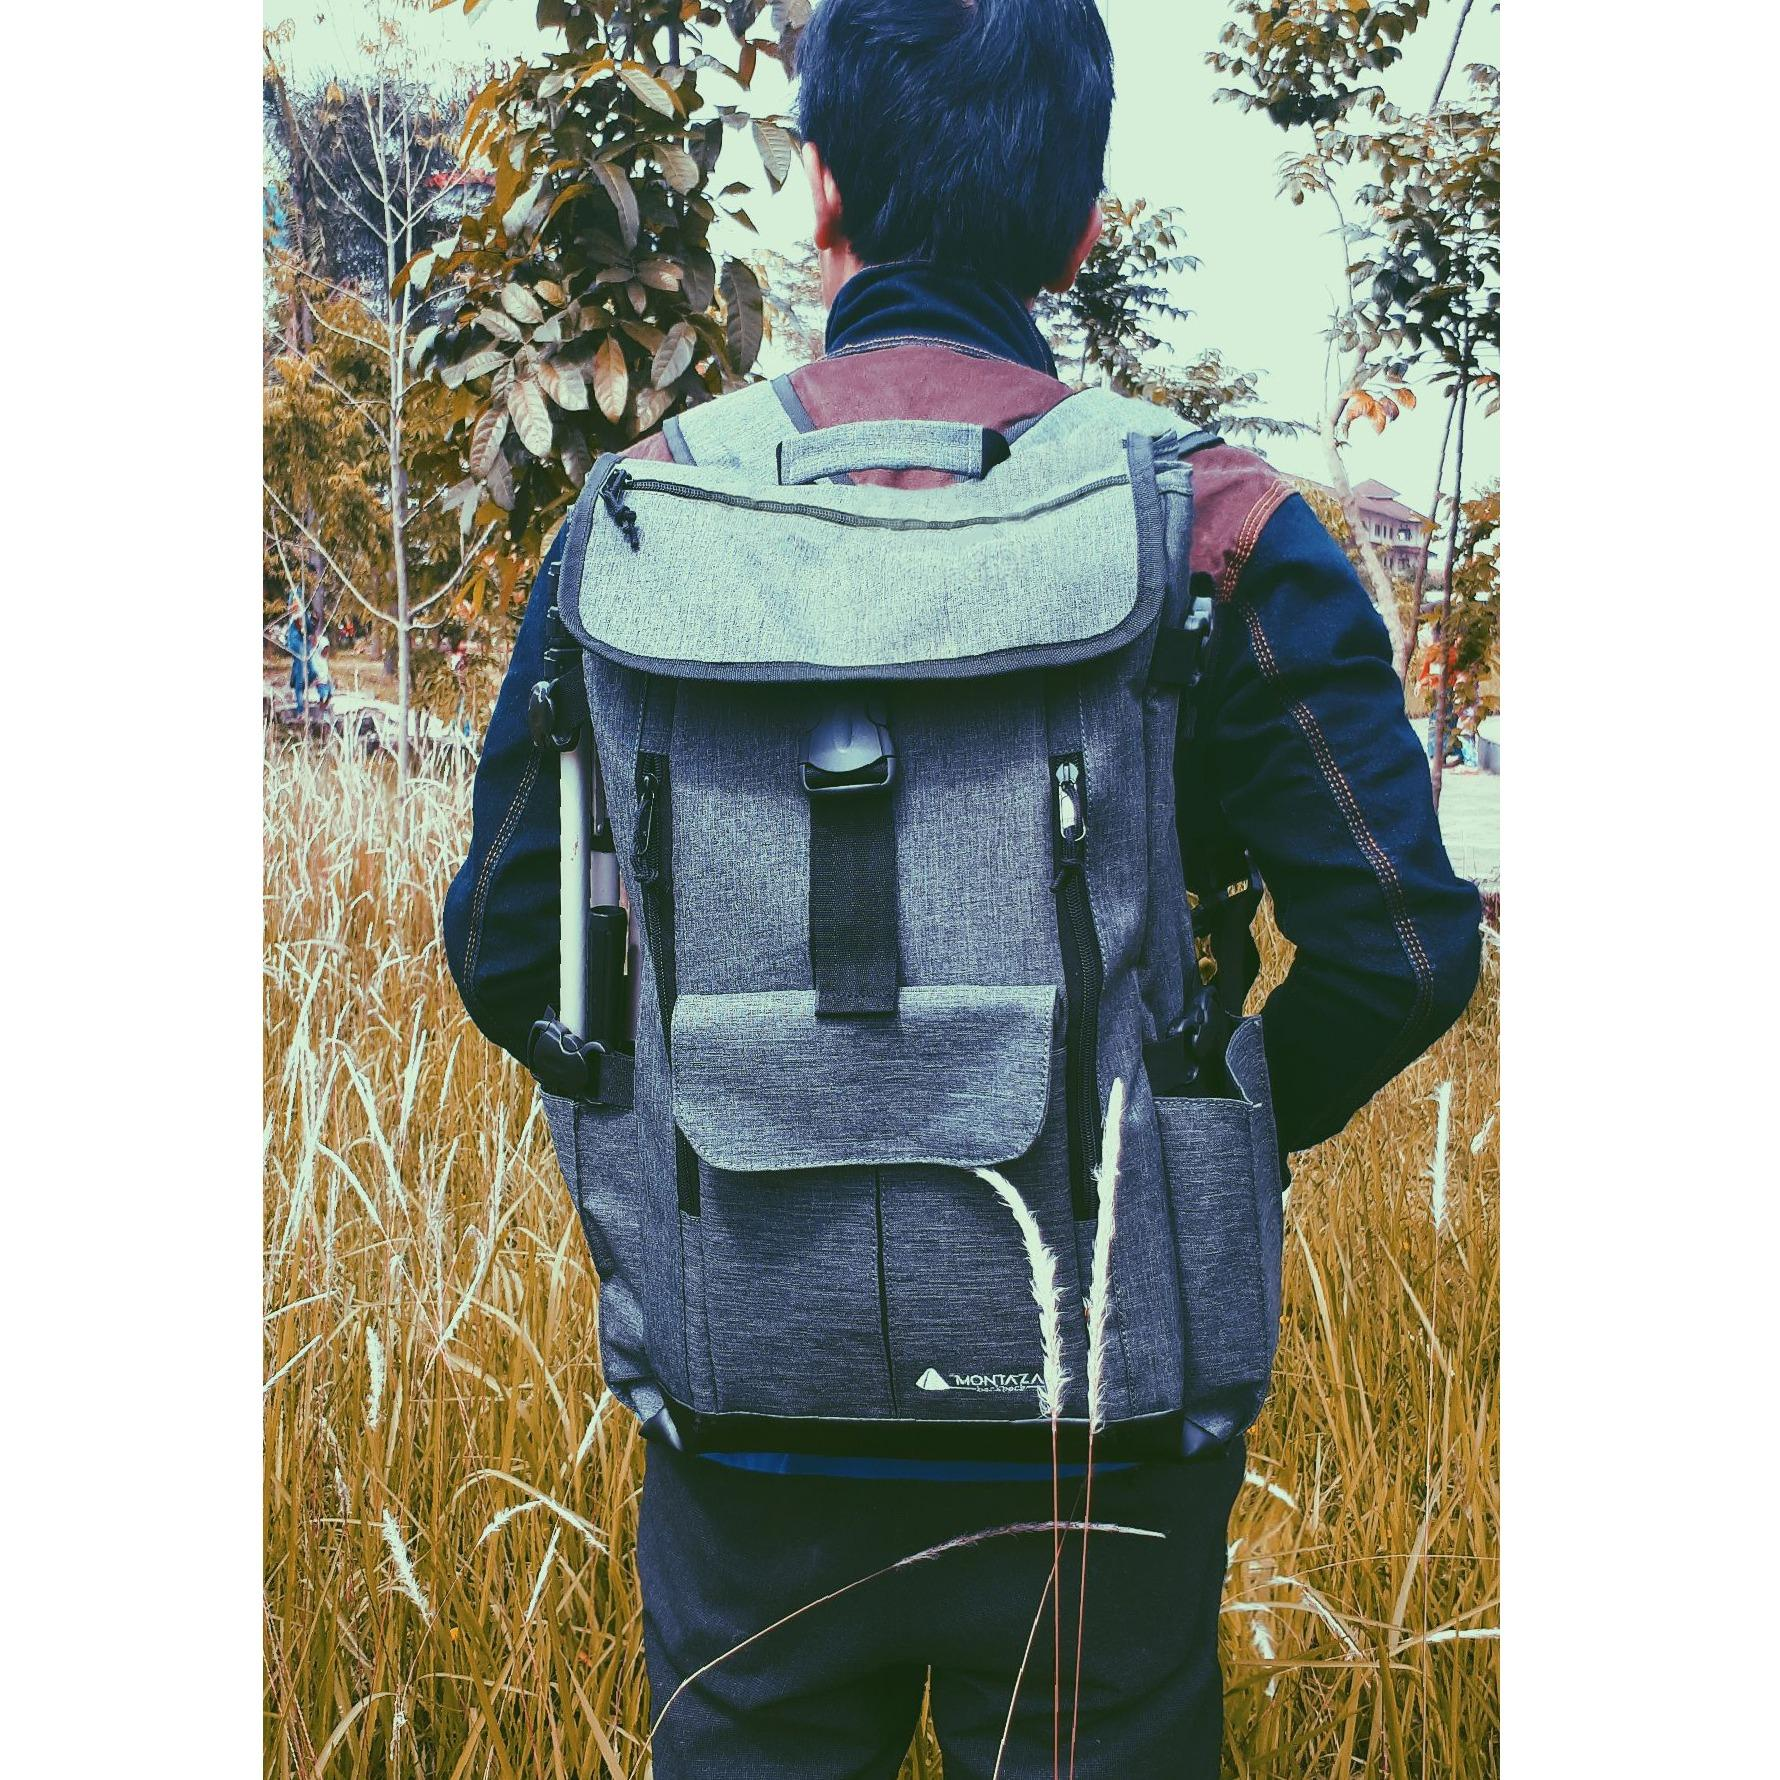 Harga Montaza Tas Ransel Laptop Roll Top Hiking Mini Carrier 30 Liter Camping Bag Gunung Mp 001 Yang Murah